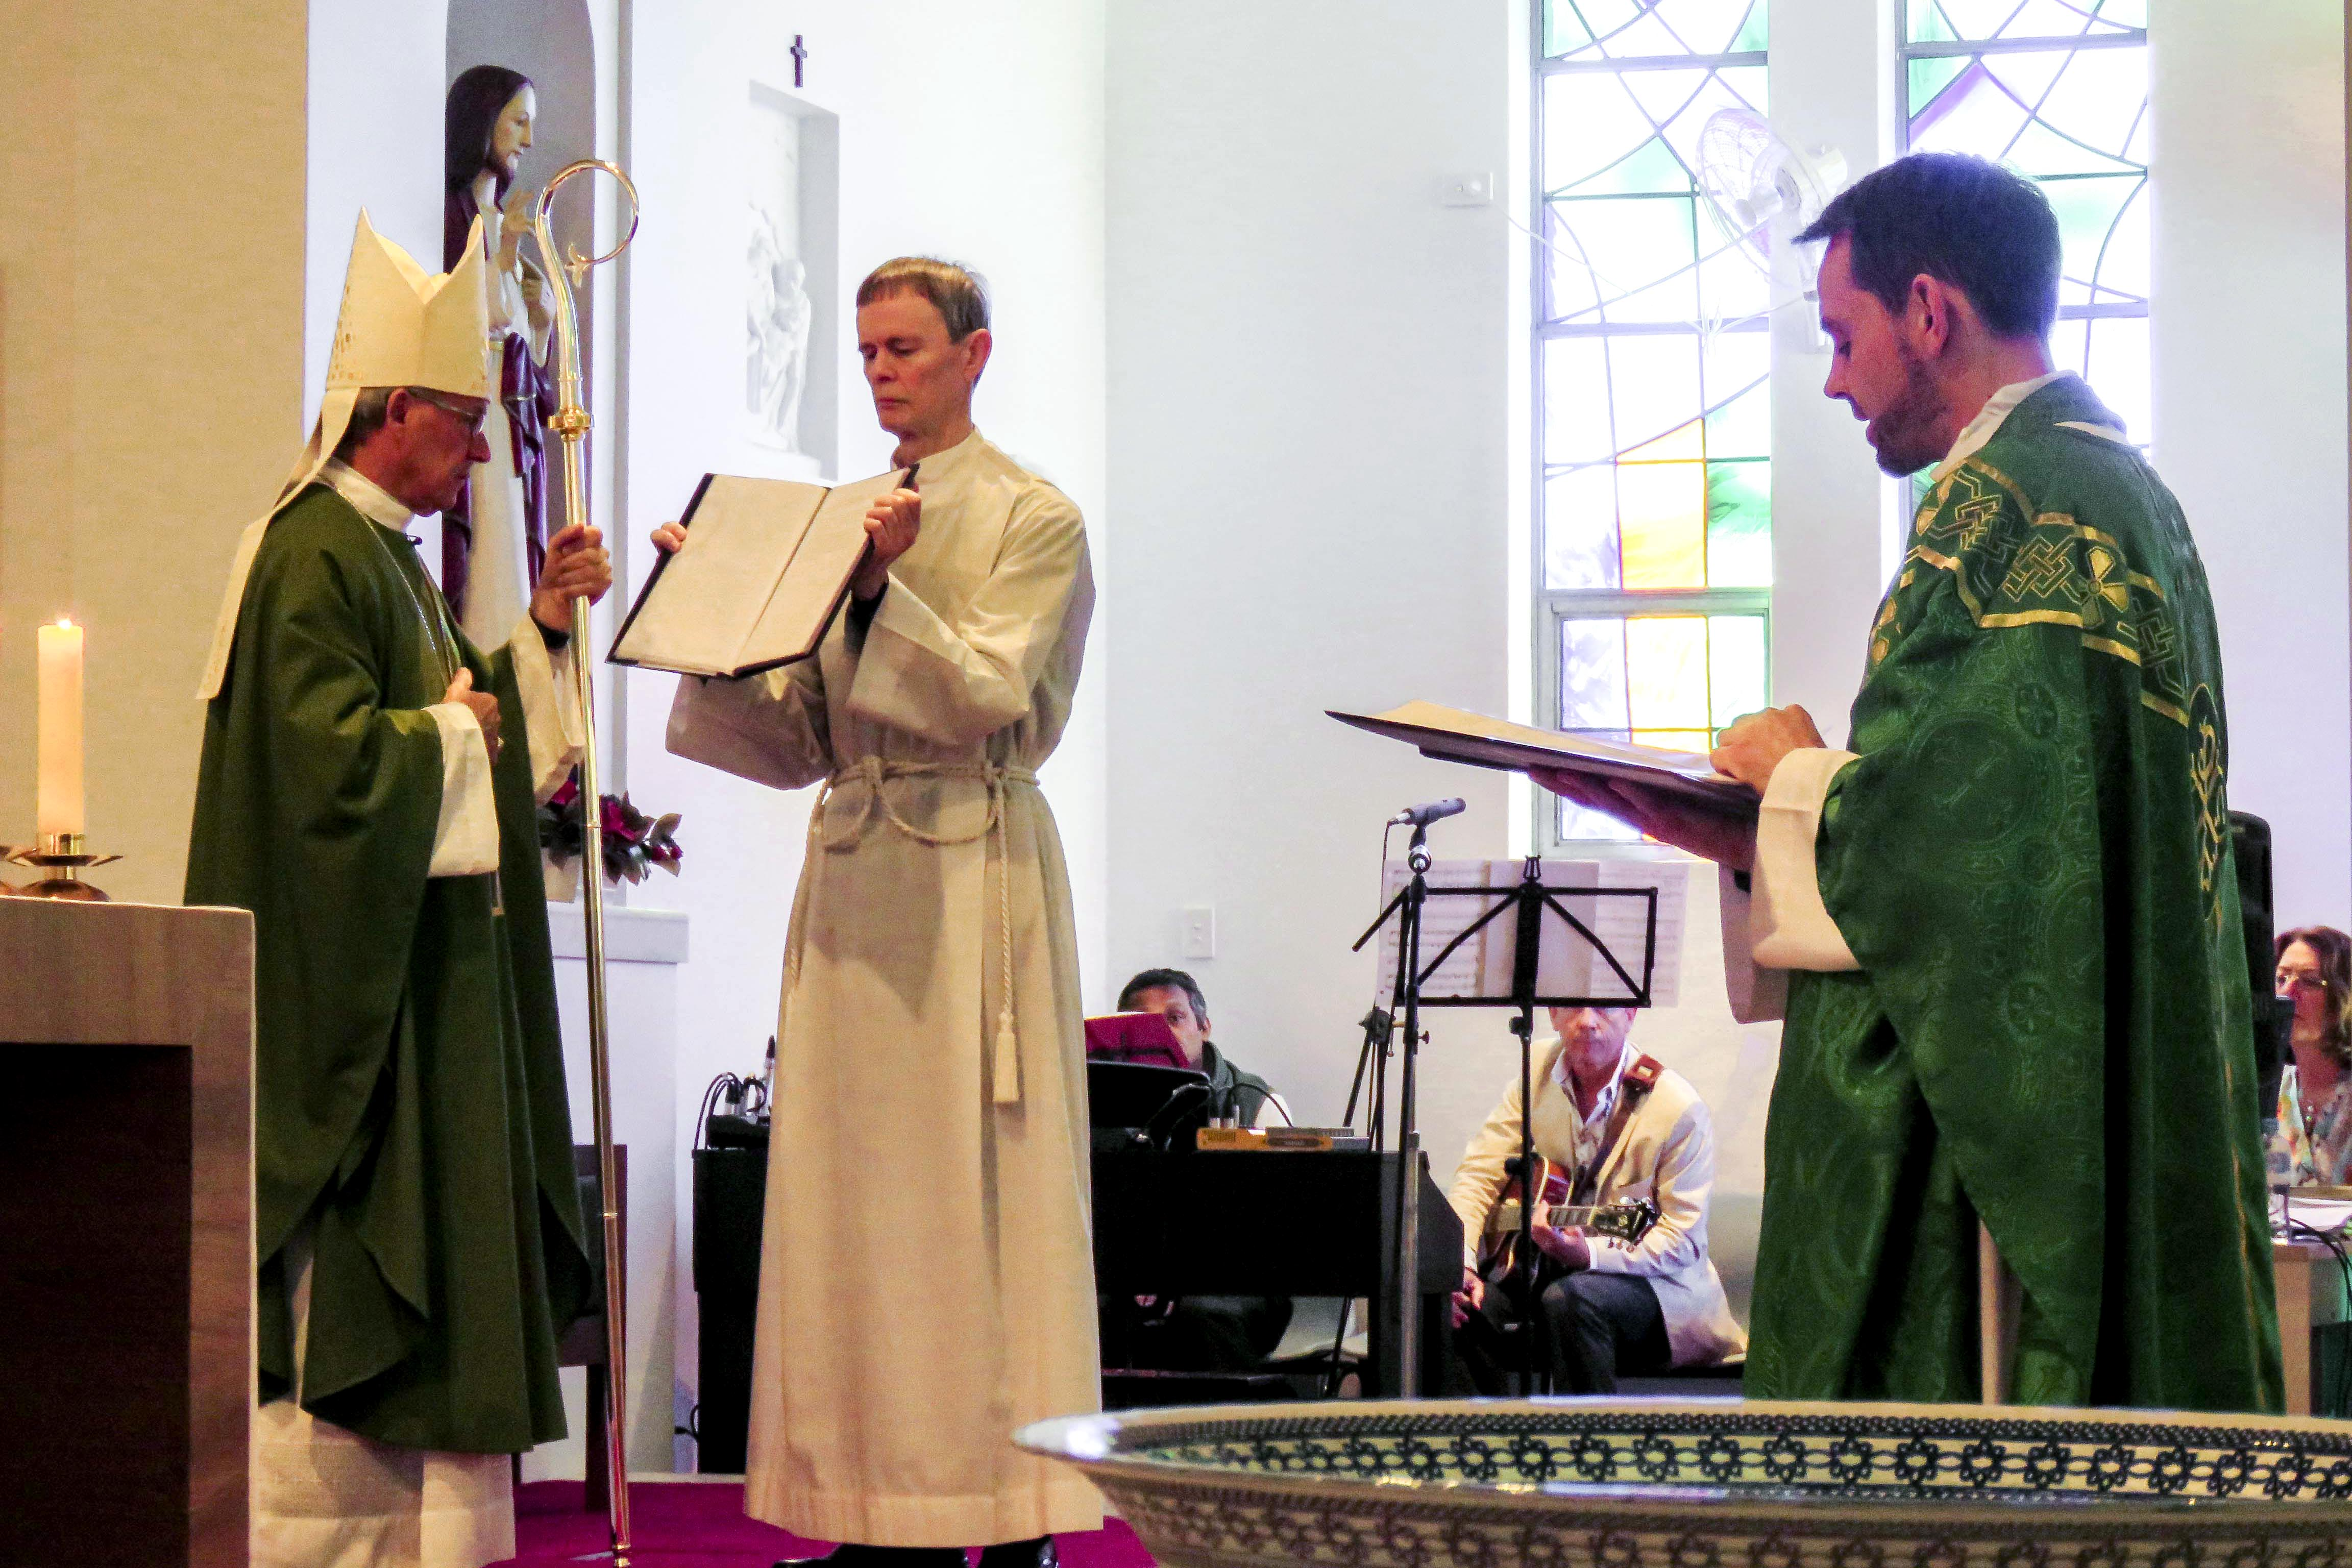 Fr Gorddard makes his Profession of Faith and Oath before the Archbishop as part of the Rite of Installation of a Parish Priest. Photo: Bridget Curran.